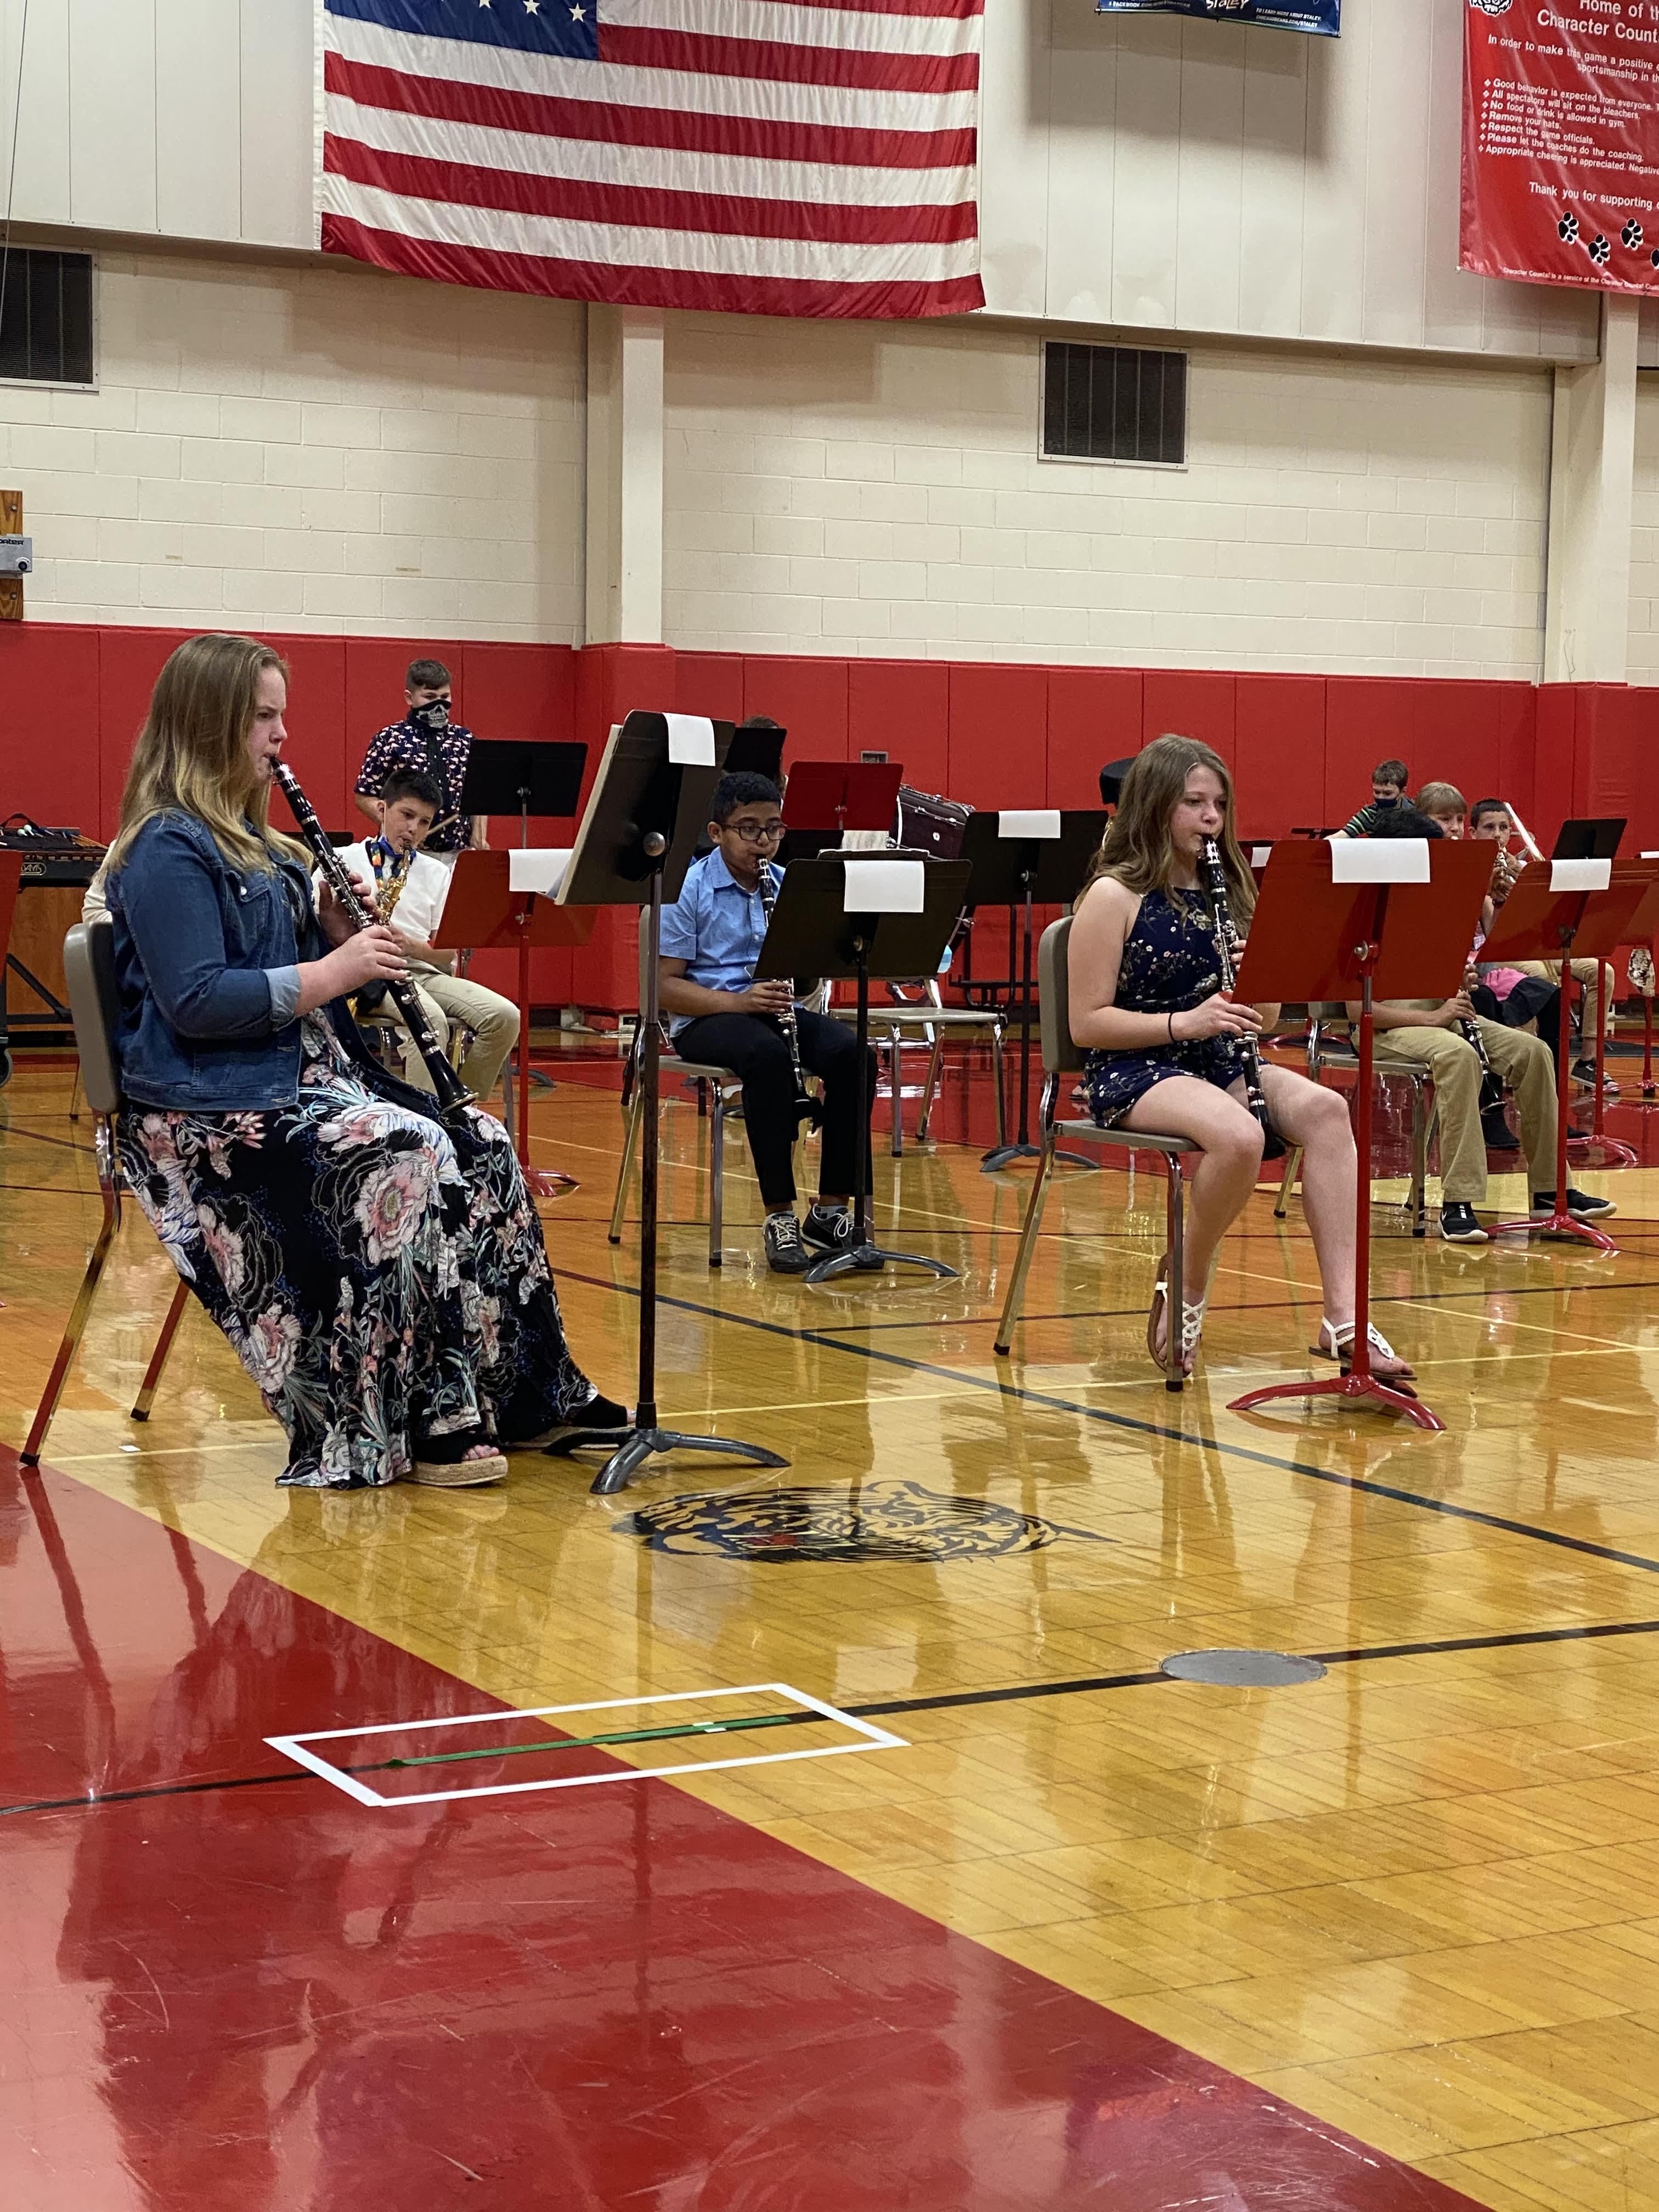 A group of students holding band instruments in the Benjamin gym